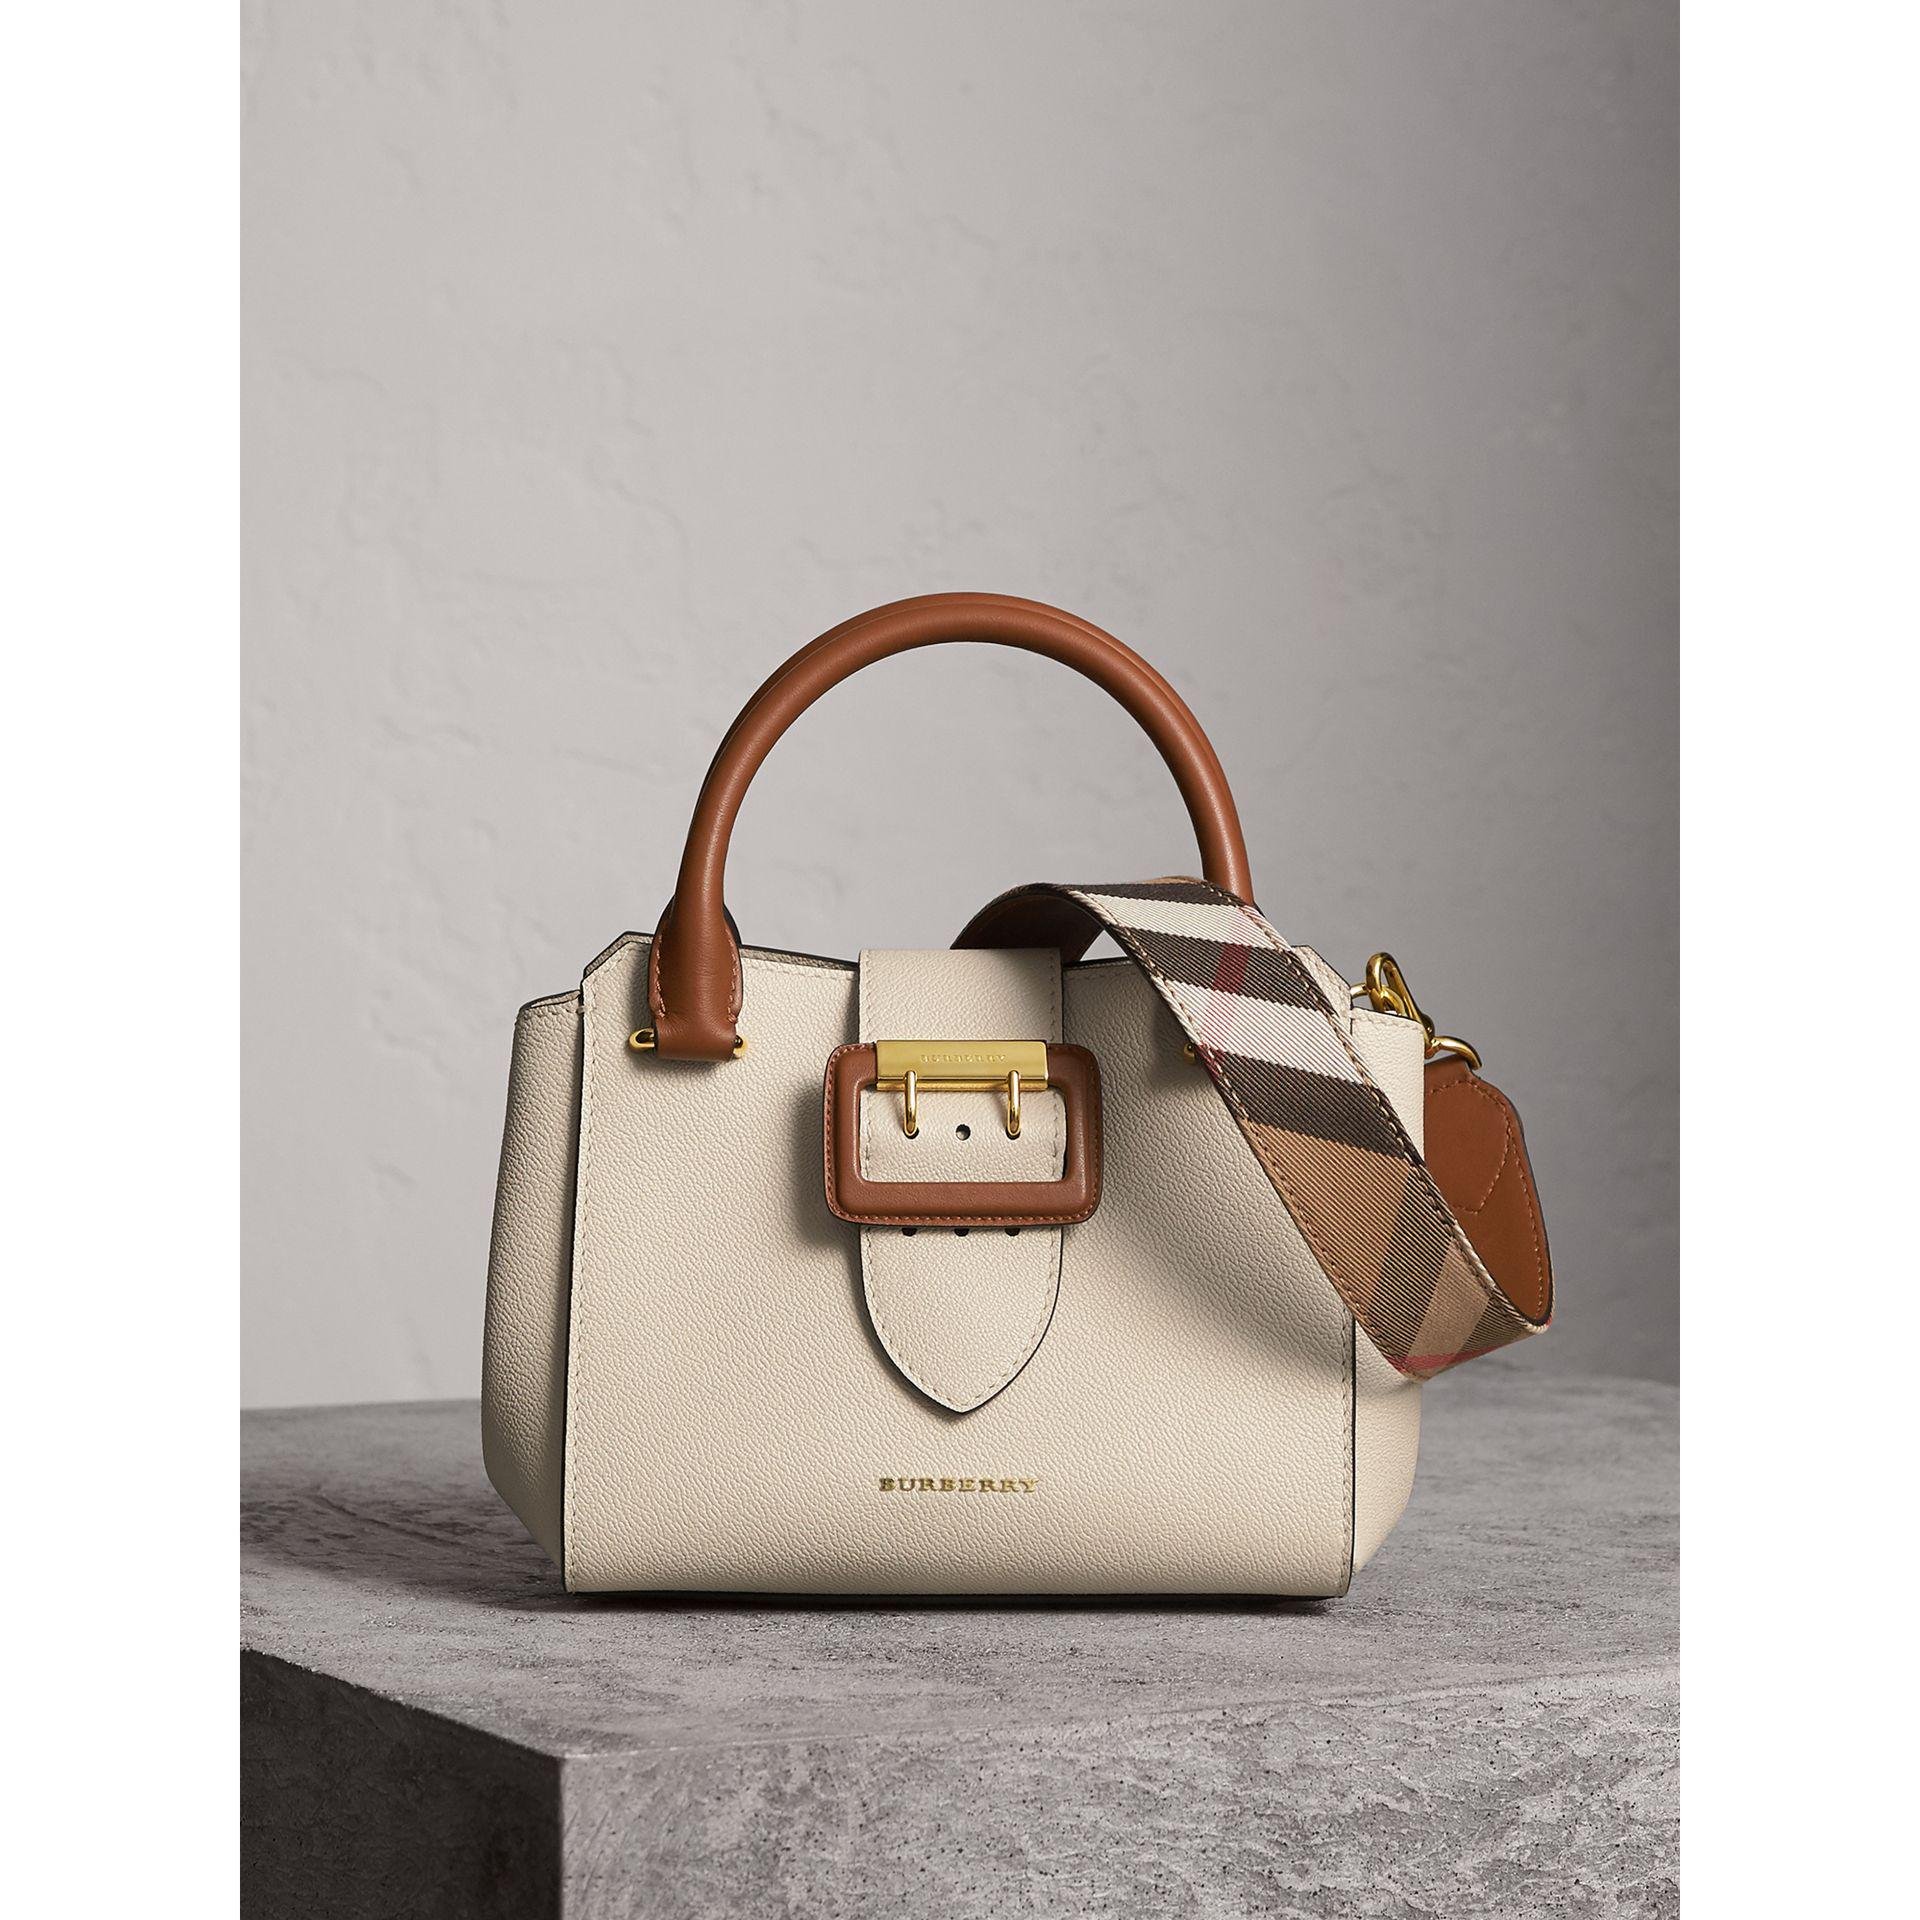 Lyst - Burberry The Small Buckle Tote In Two-tone Leather - Women  b0d9c878022d7